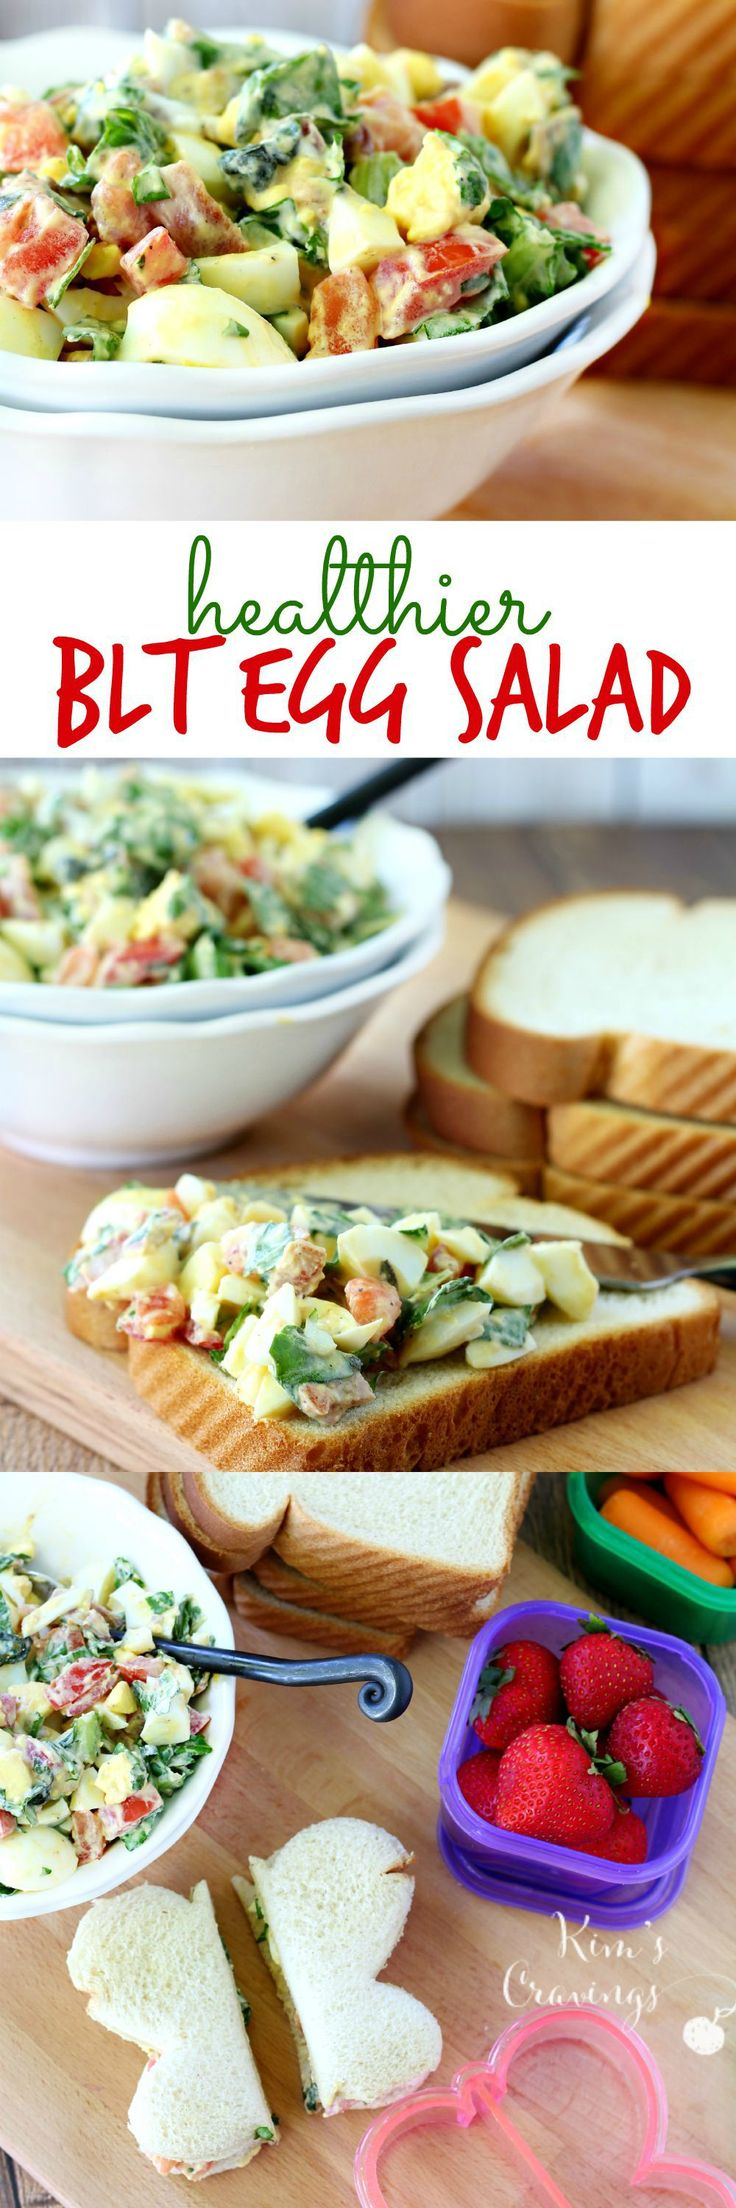 All the flavor of a BLT in a healthy egg salad, perfect for back-to-school… or in my case, back-to-work lunches. Packed with protein and healthy fats to keep you satisfied throughout the day, while being super simple to throw together!